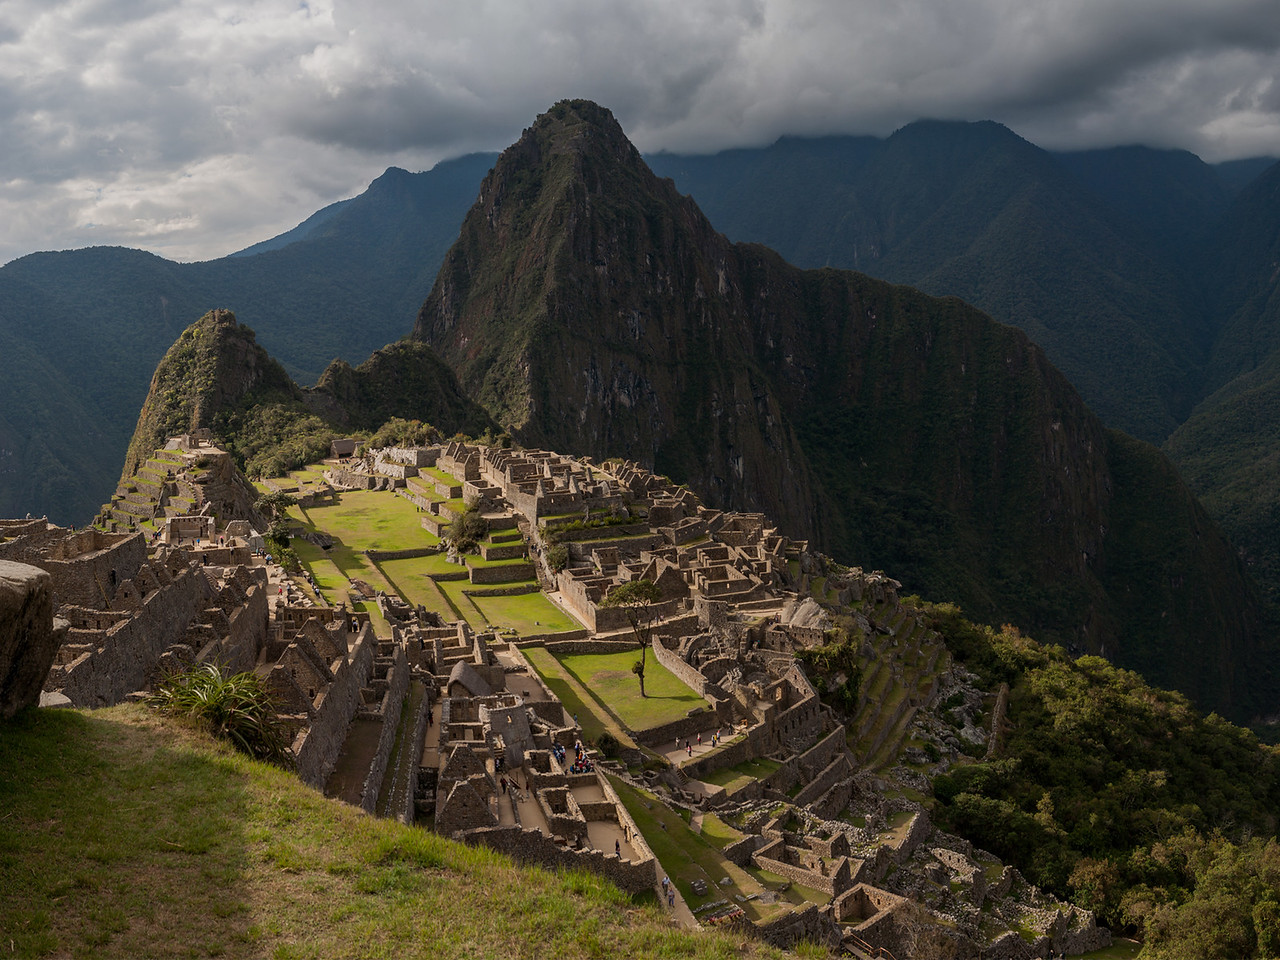 Machu Picchu set against the backdrop of Huayna Picchu